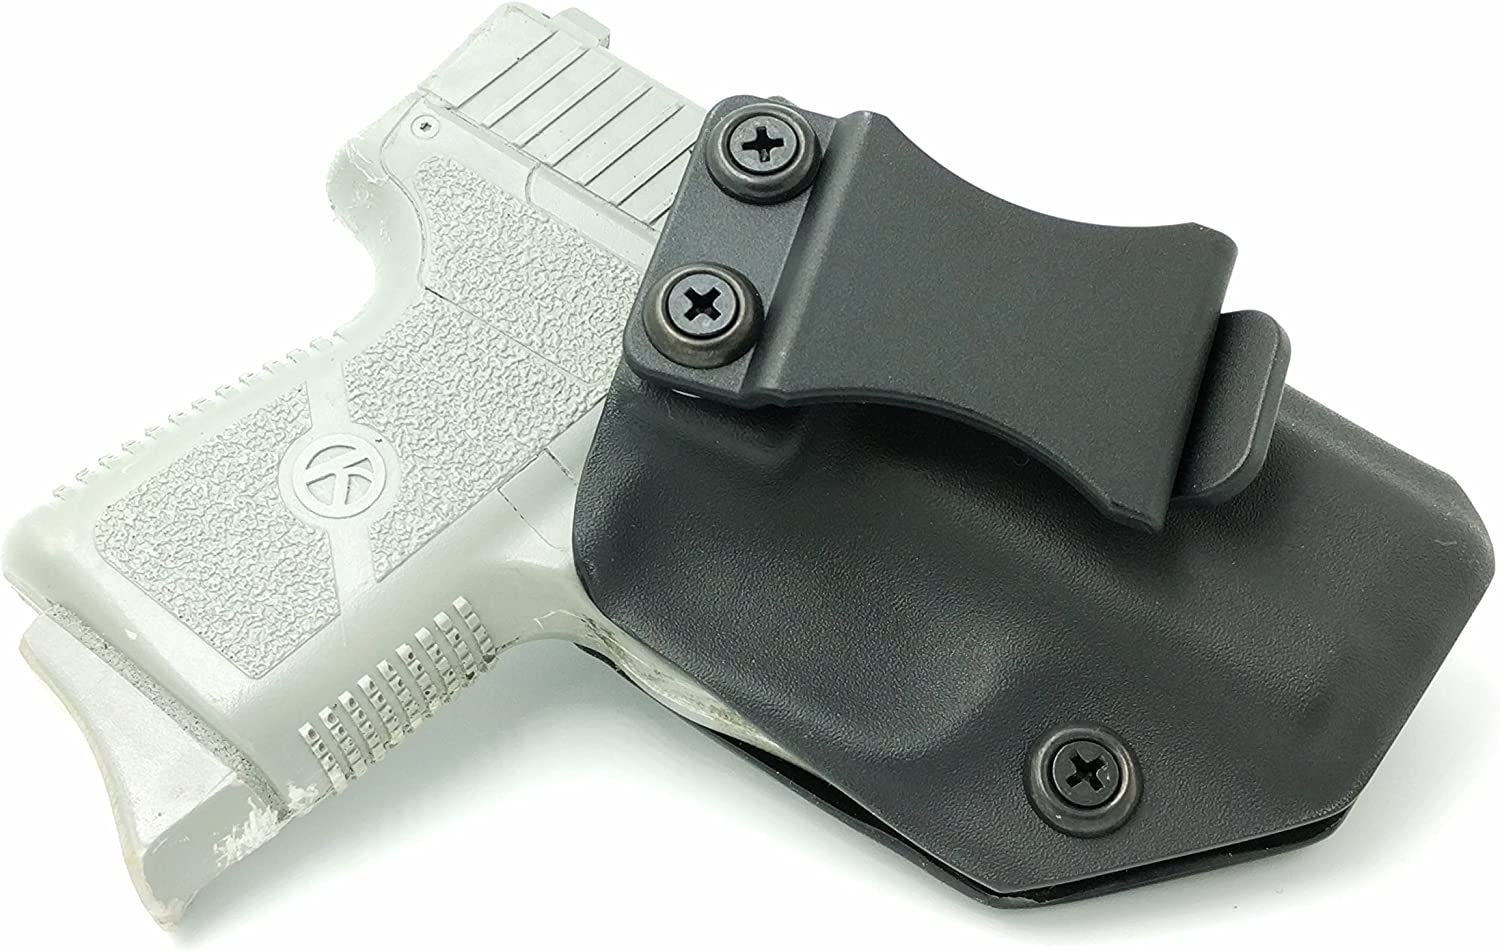 Adj Retention IWB Kydex Holster for Kahr PM//CM 9 Canted